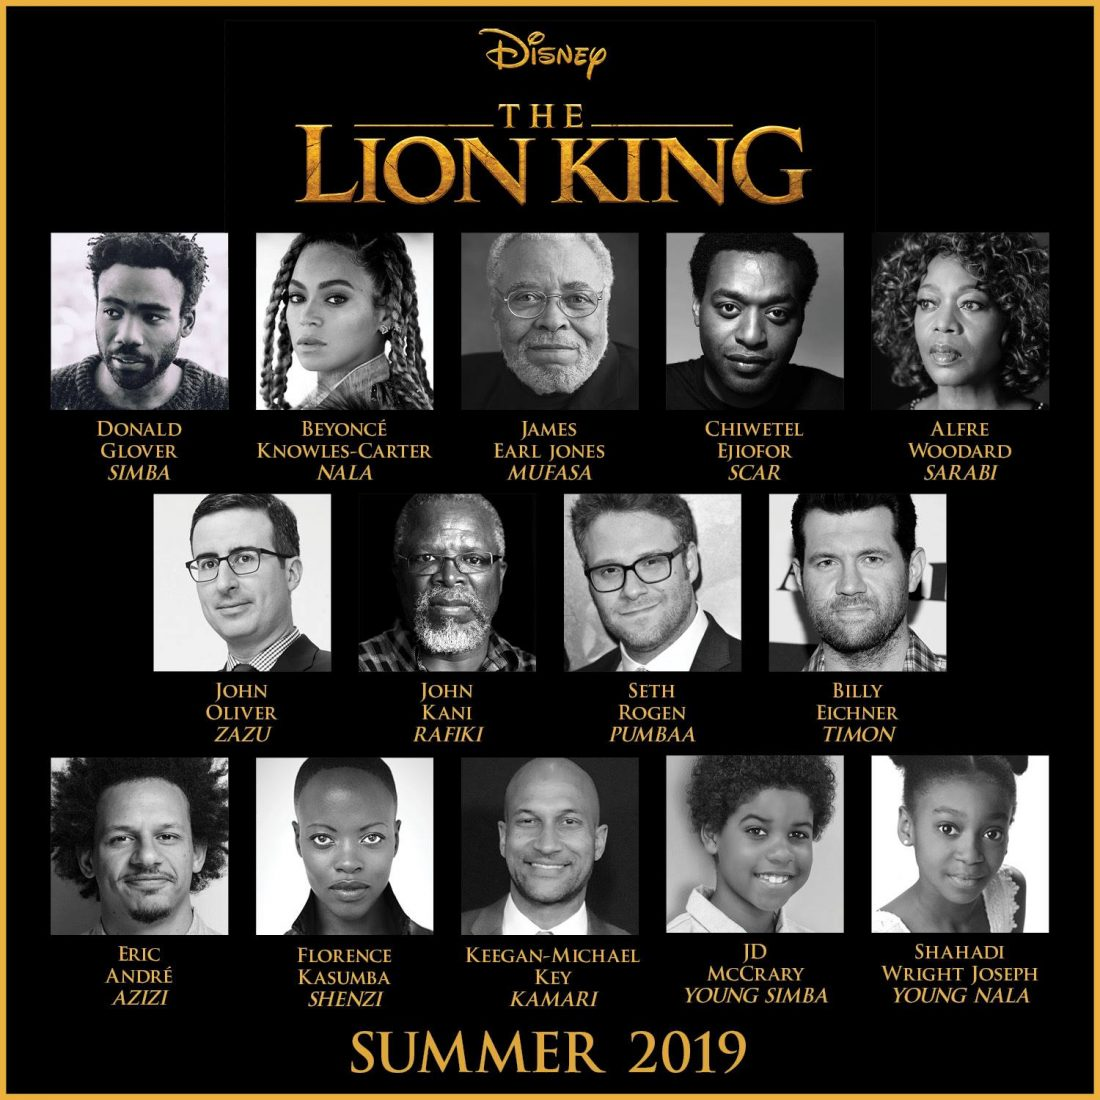 Beyoncé and Donald Glover confirmed to star in Disney's Lion King!